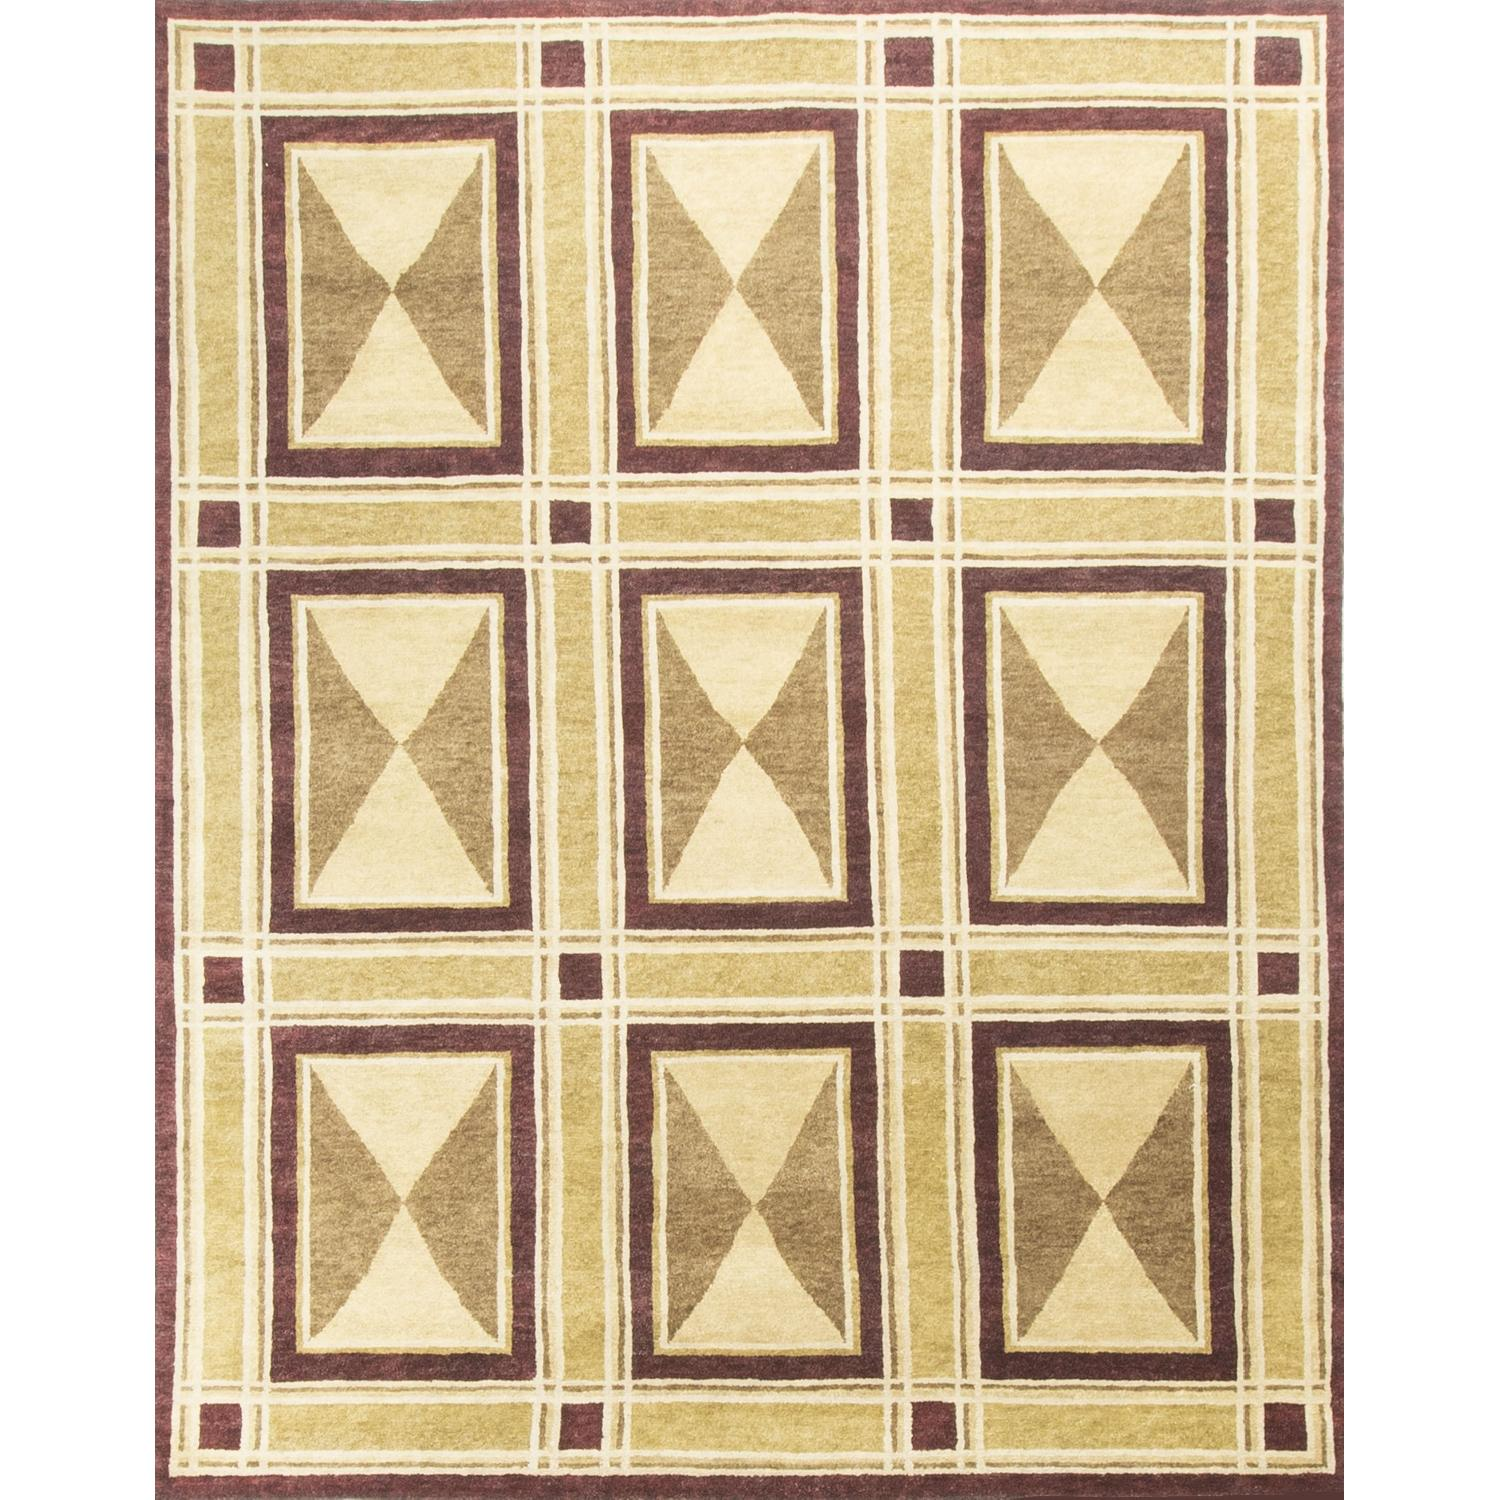 Modern Contemporary Hand Knotted Wool Rug in Red/Beige/Brown - image-0